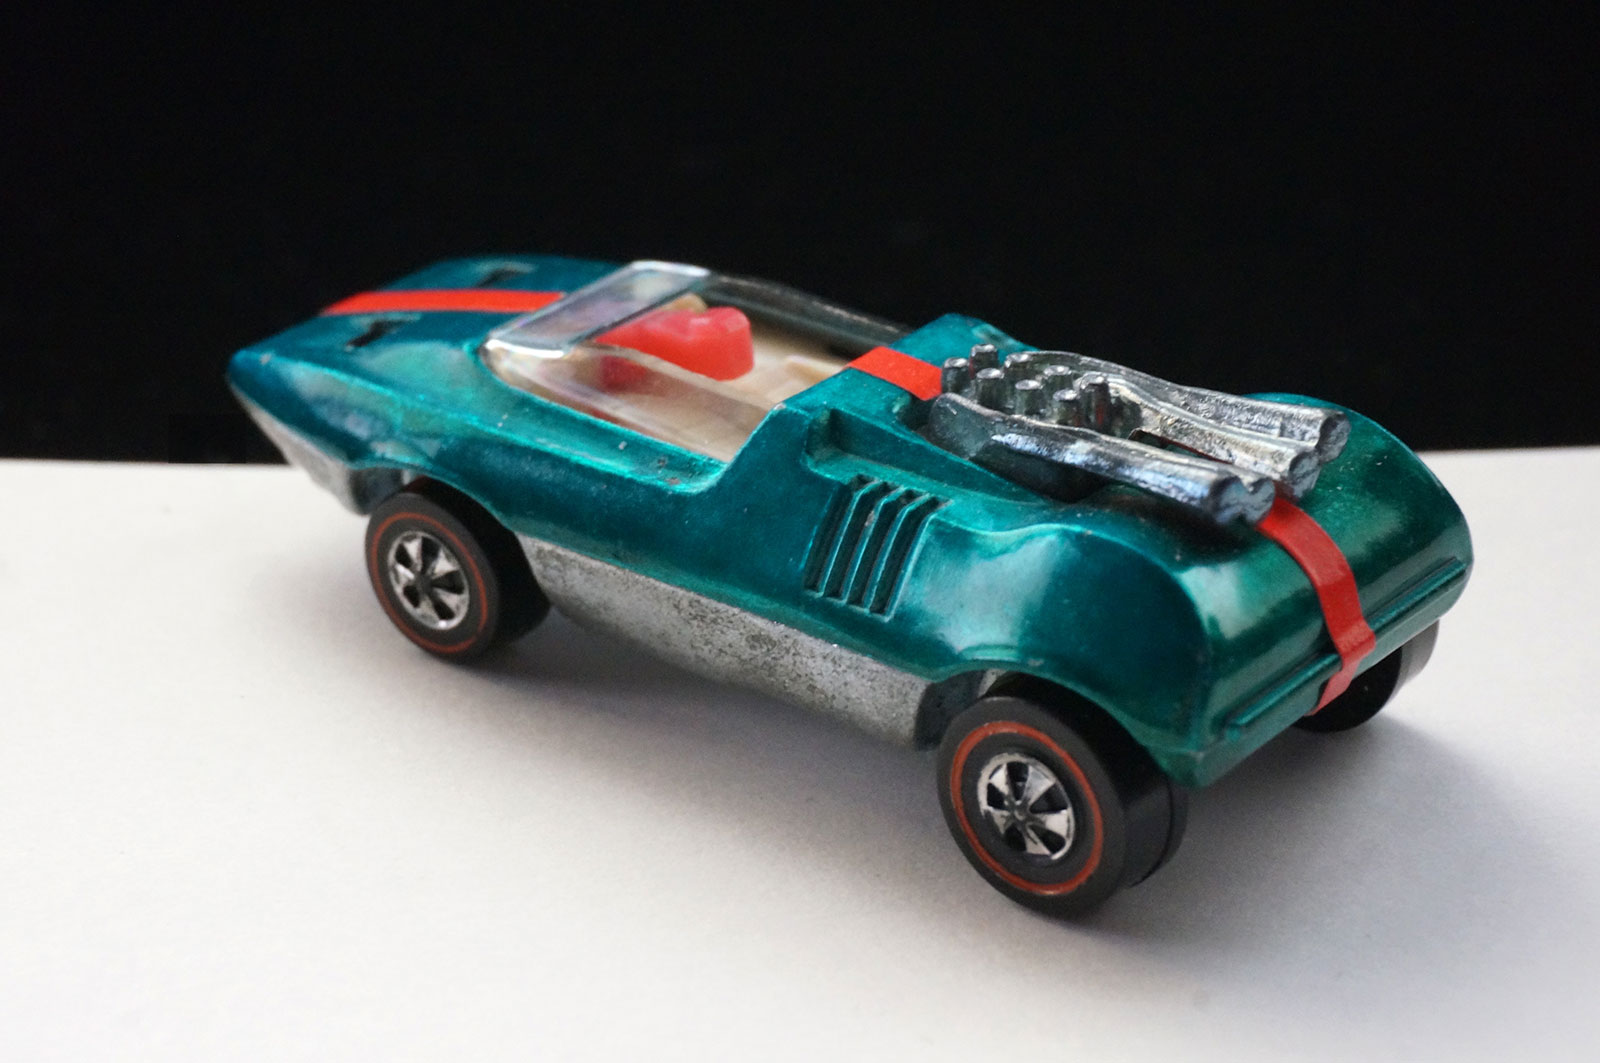 Hot Wheels Redline Aqua Peeping Bomb Prototype